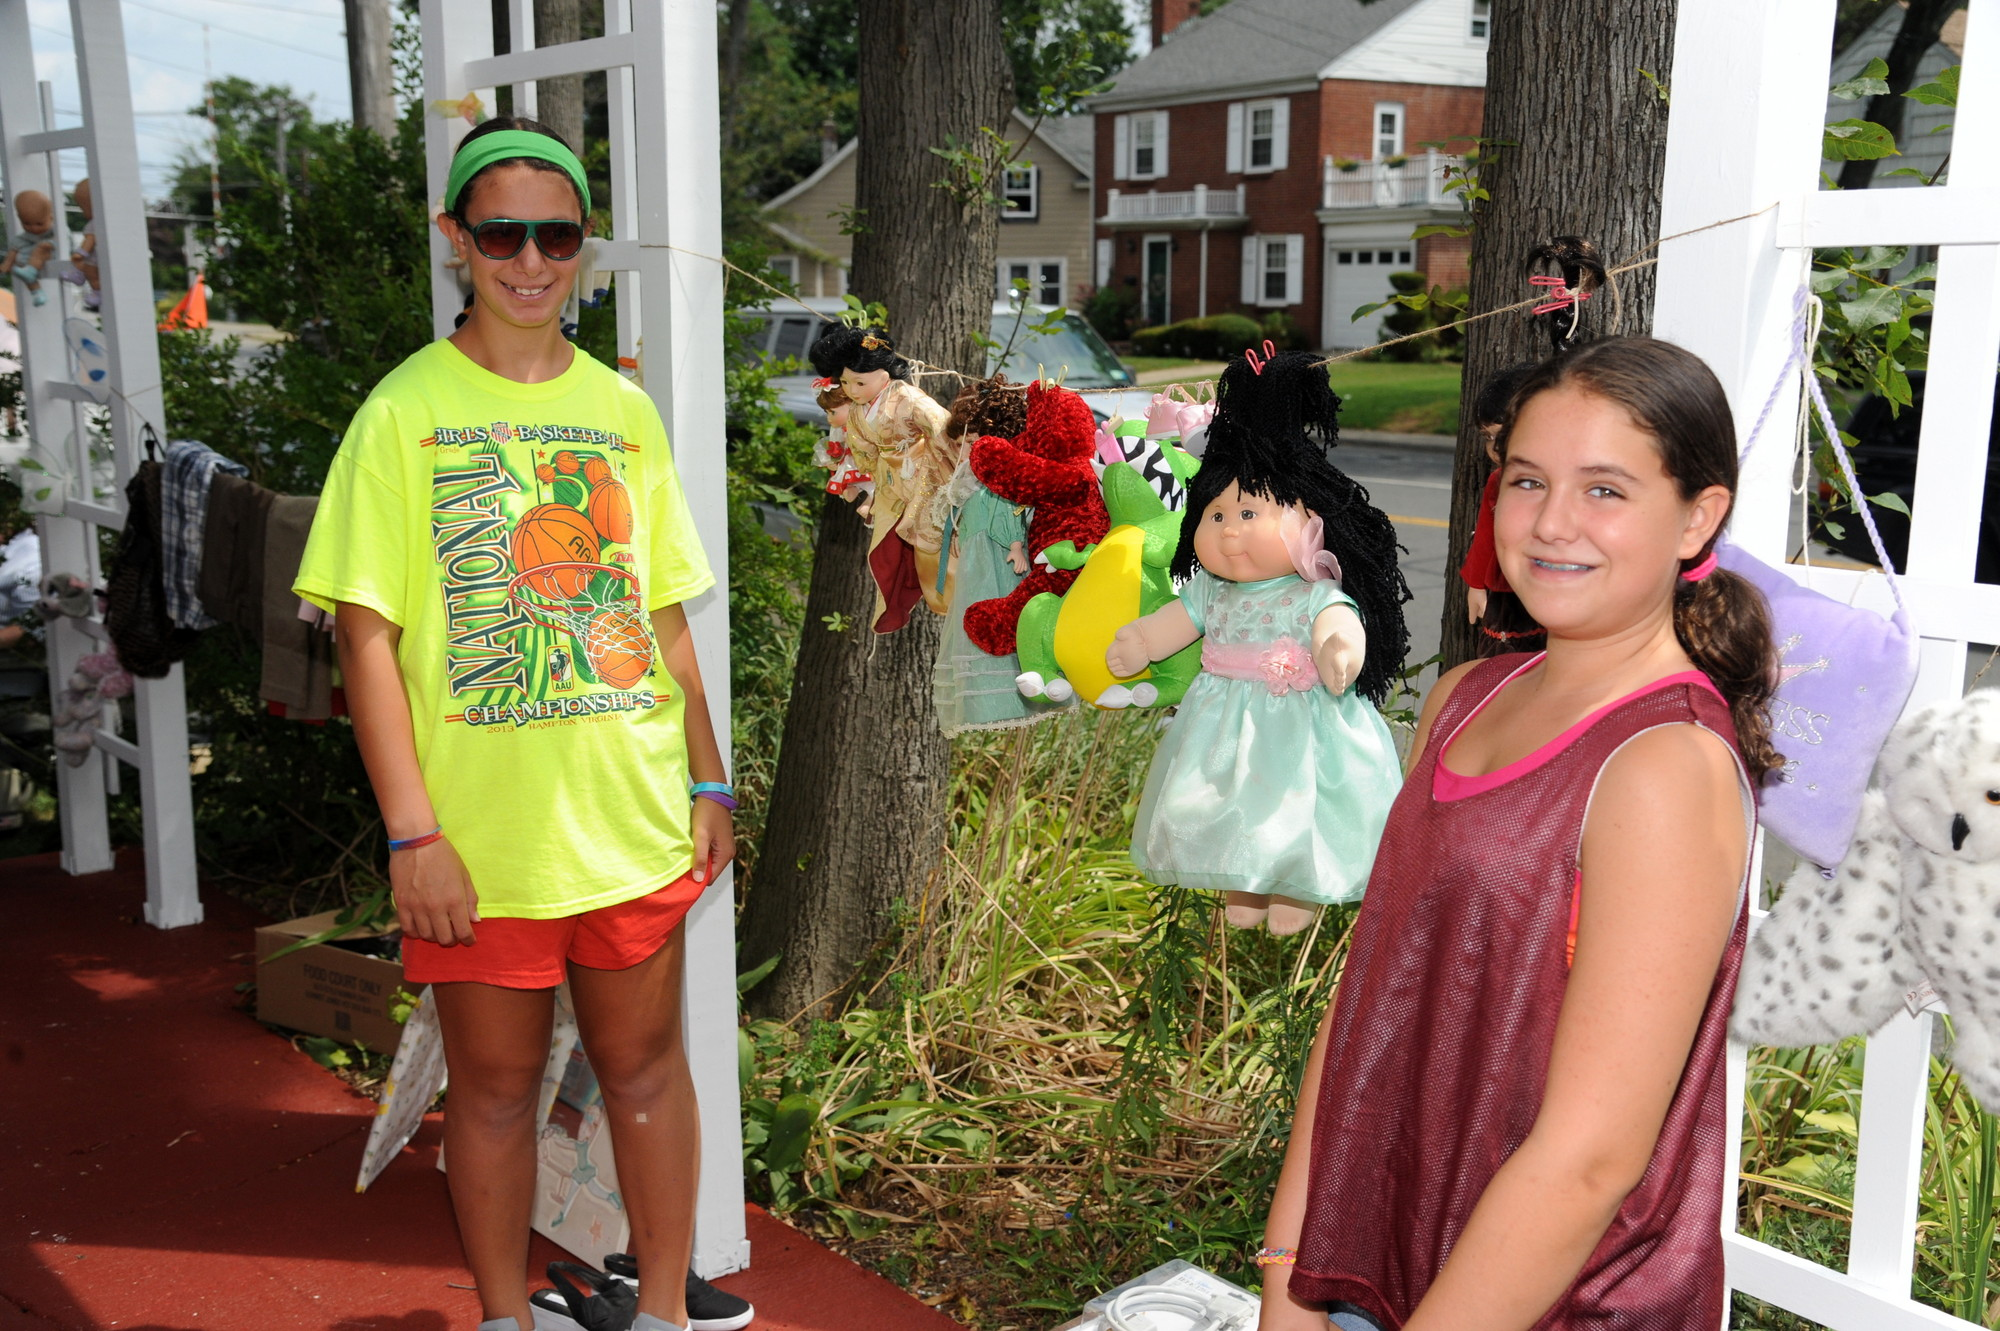 Sam Calcadno,11, and Jamie Behar,11, sold their wares of childhood toys.